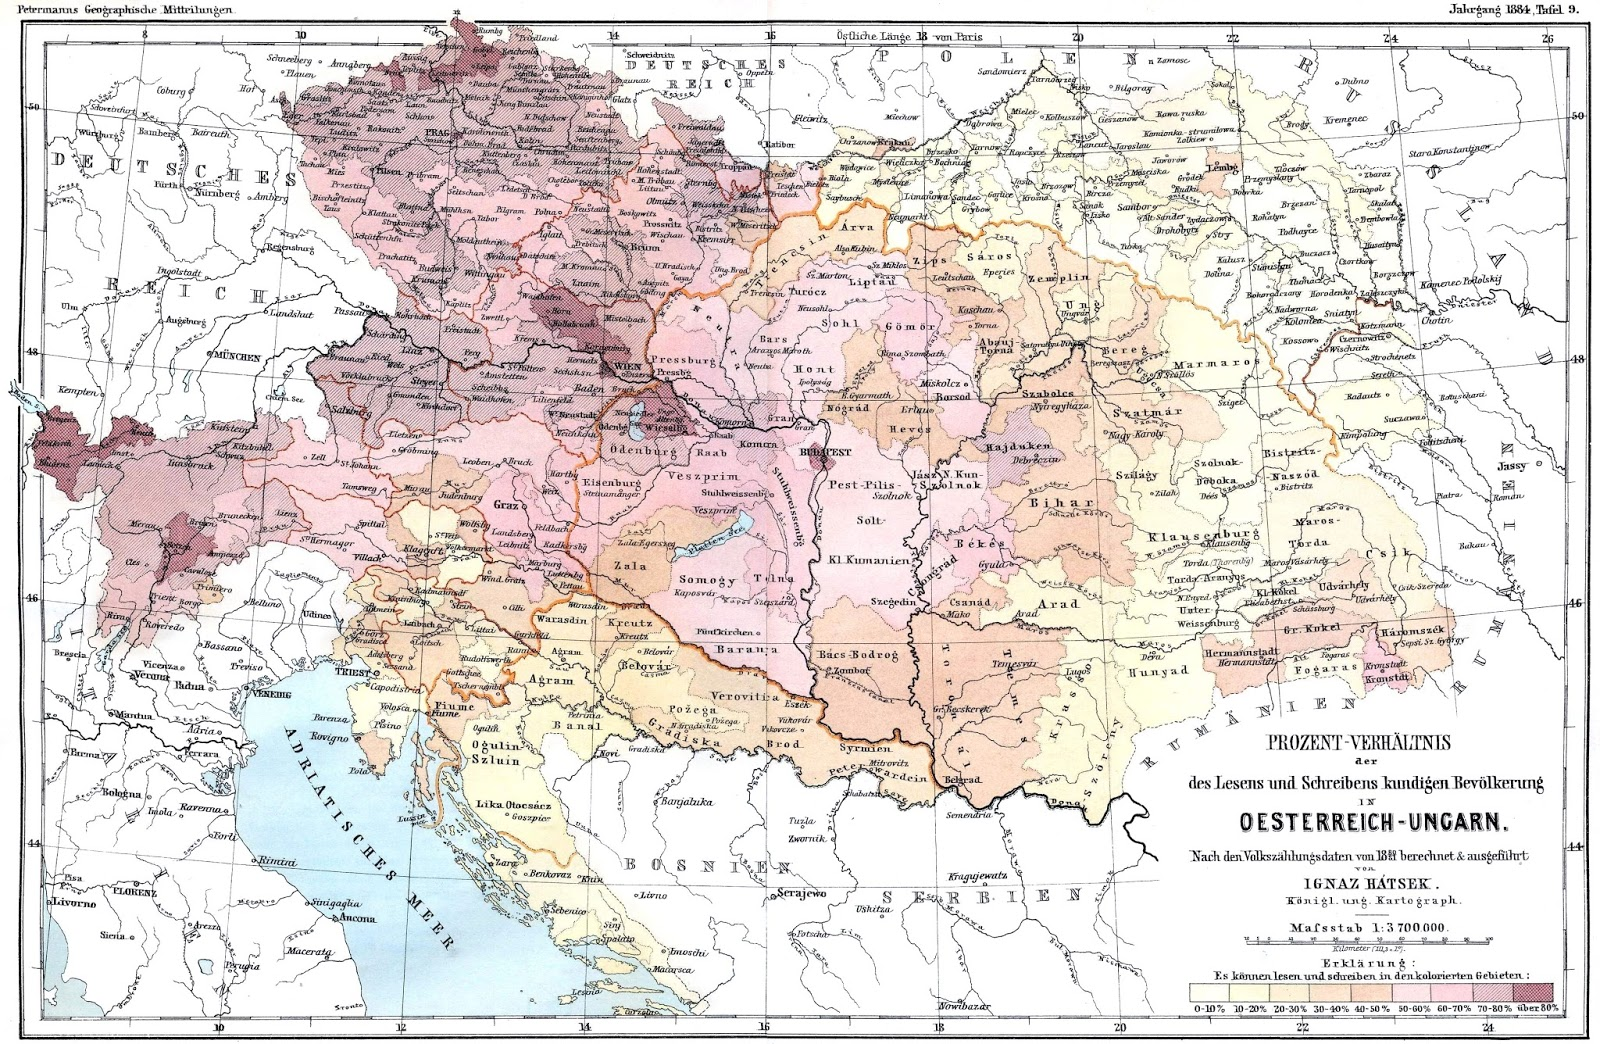 Literacy in Austria-Hungary (1880)